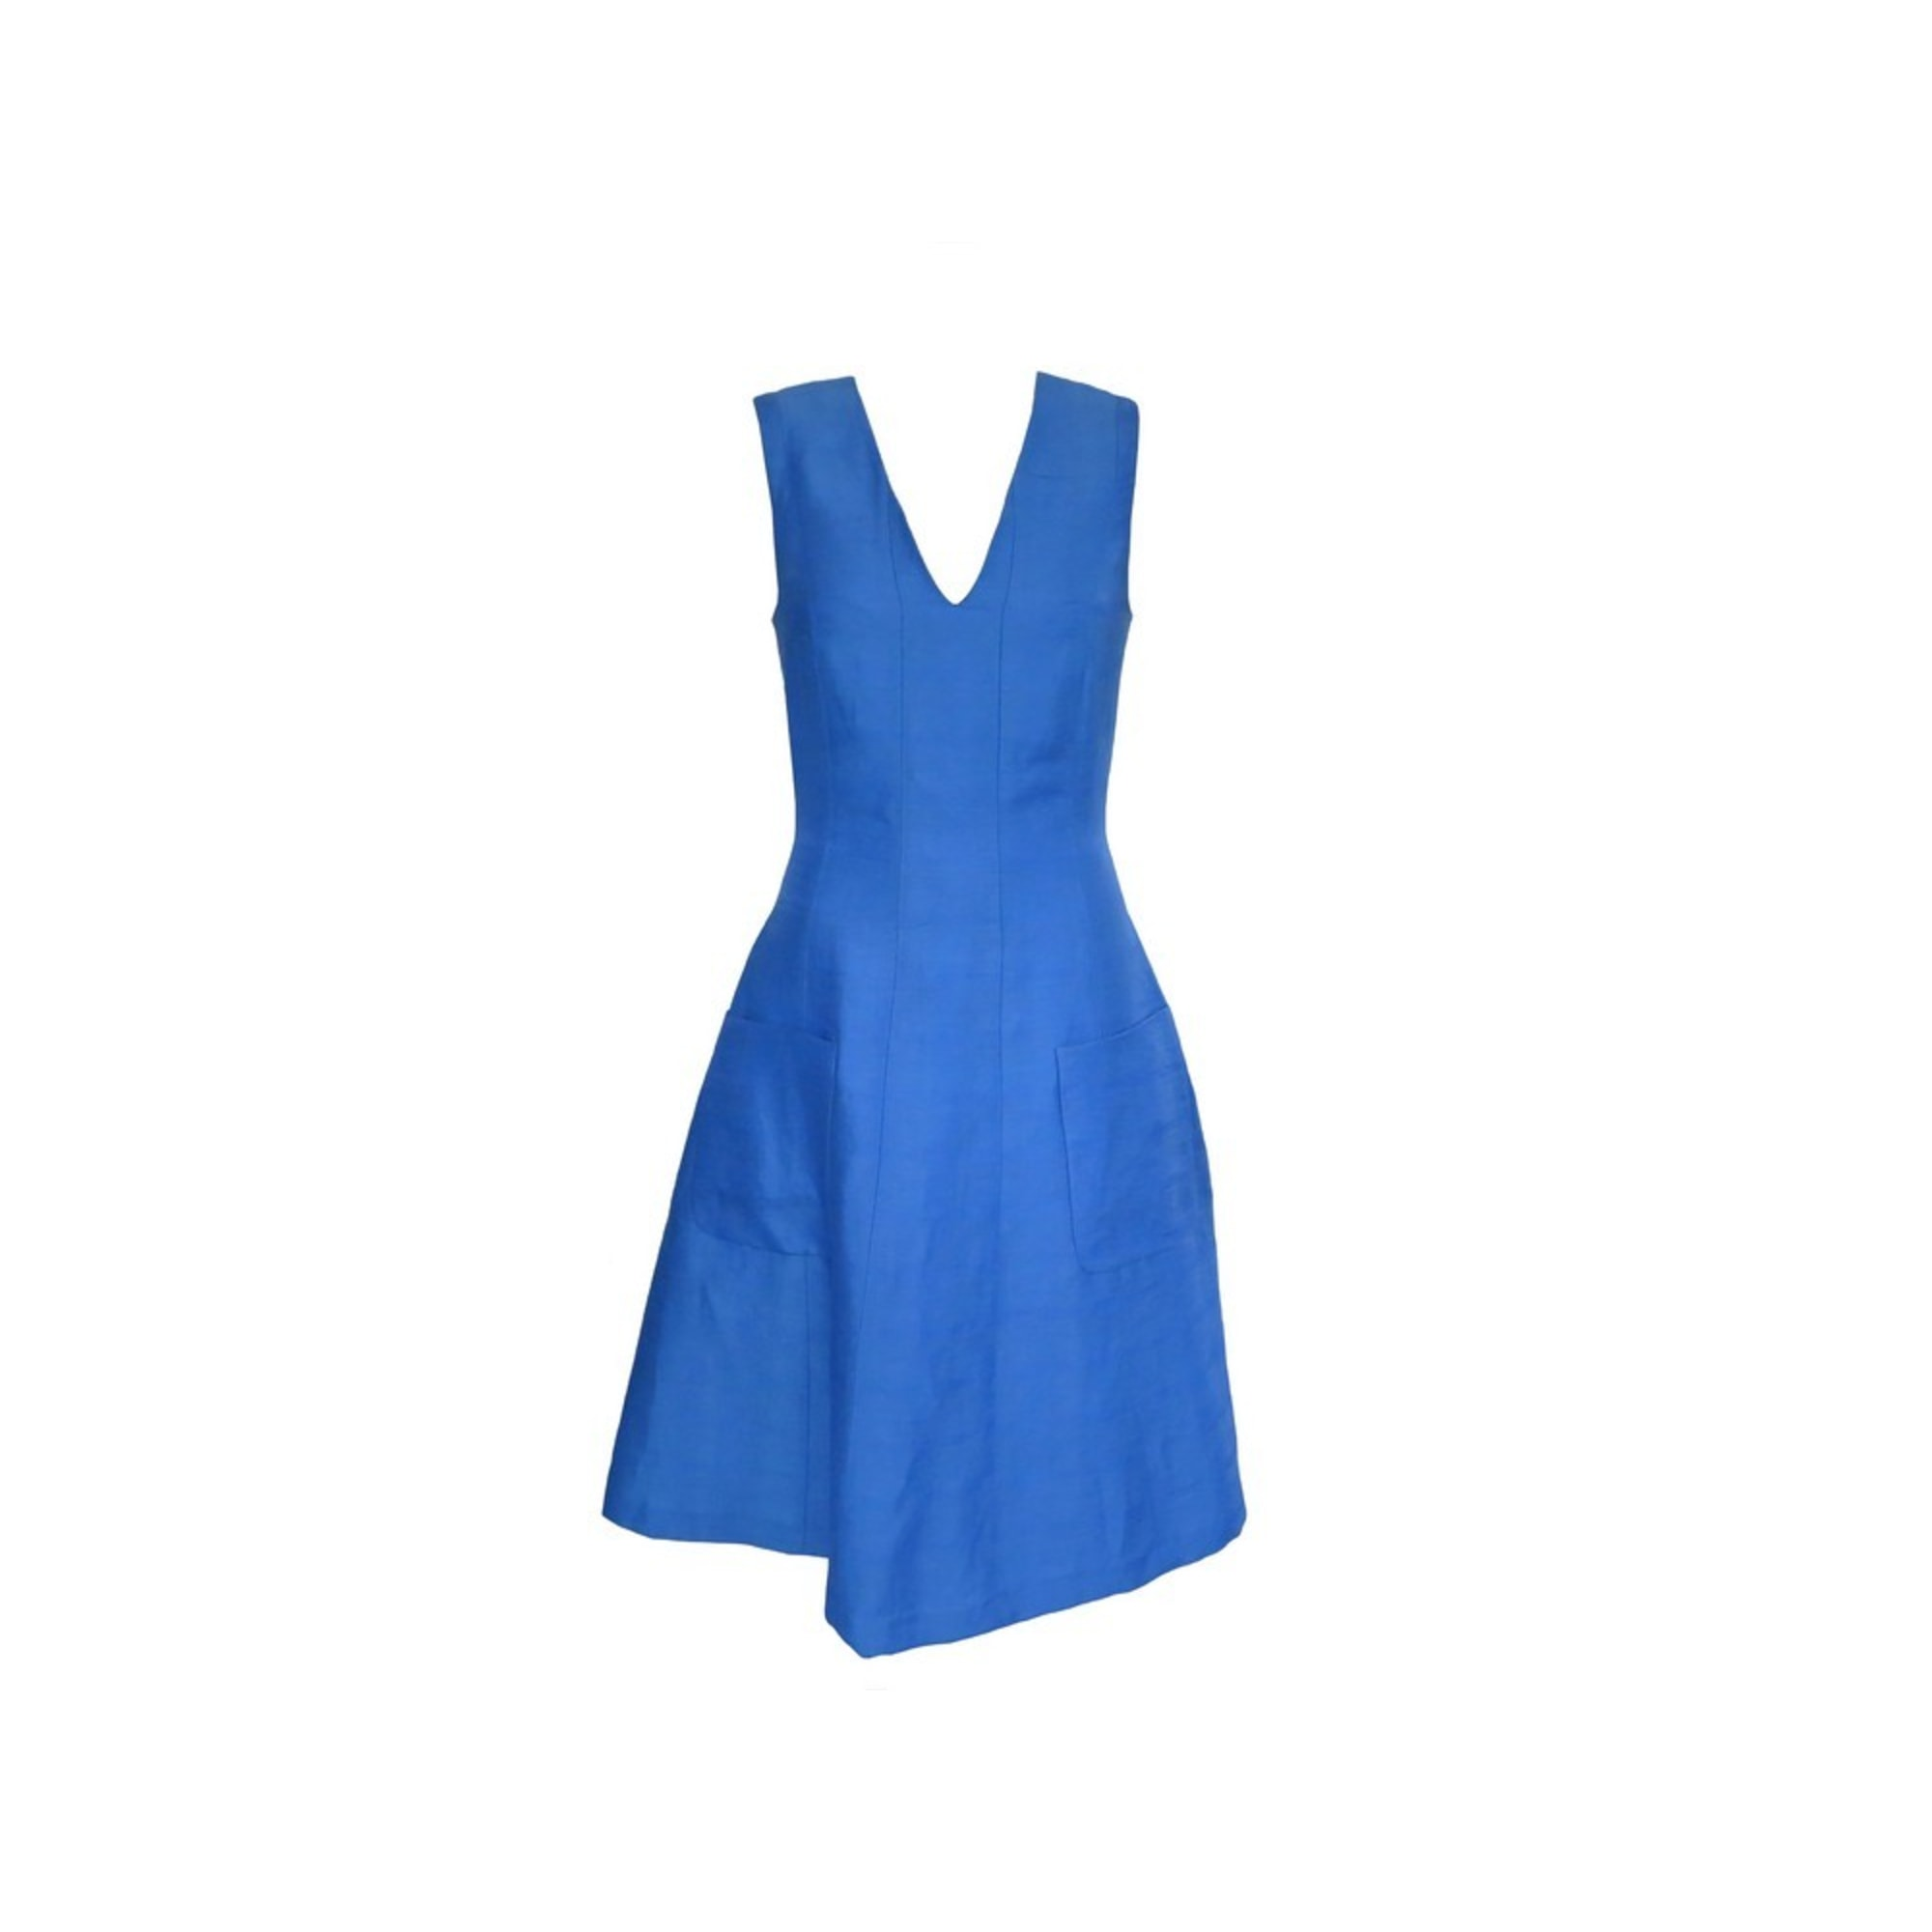 Robe mi-longue PAUL SMITH Bleu